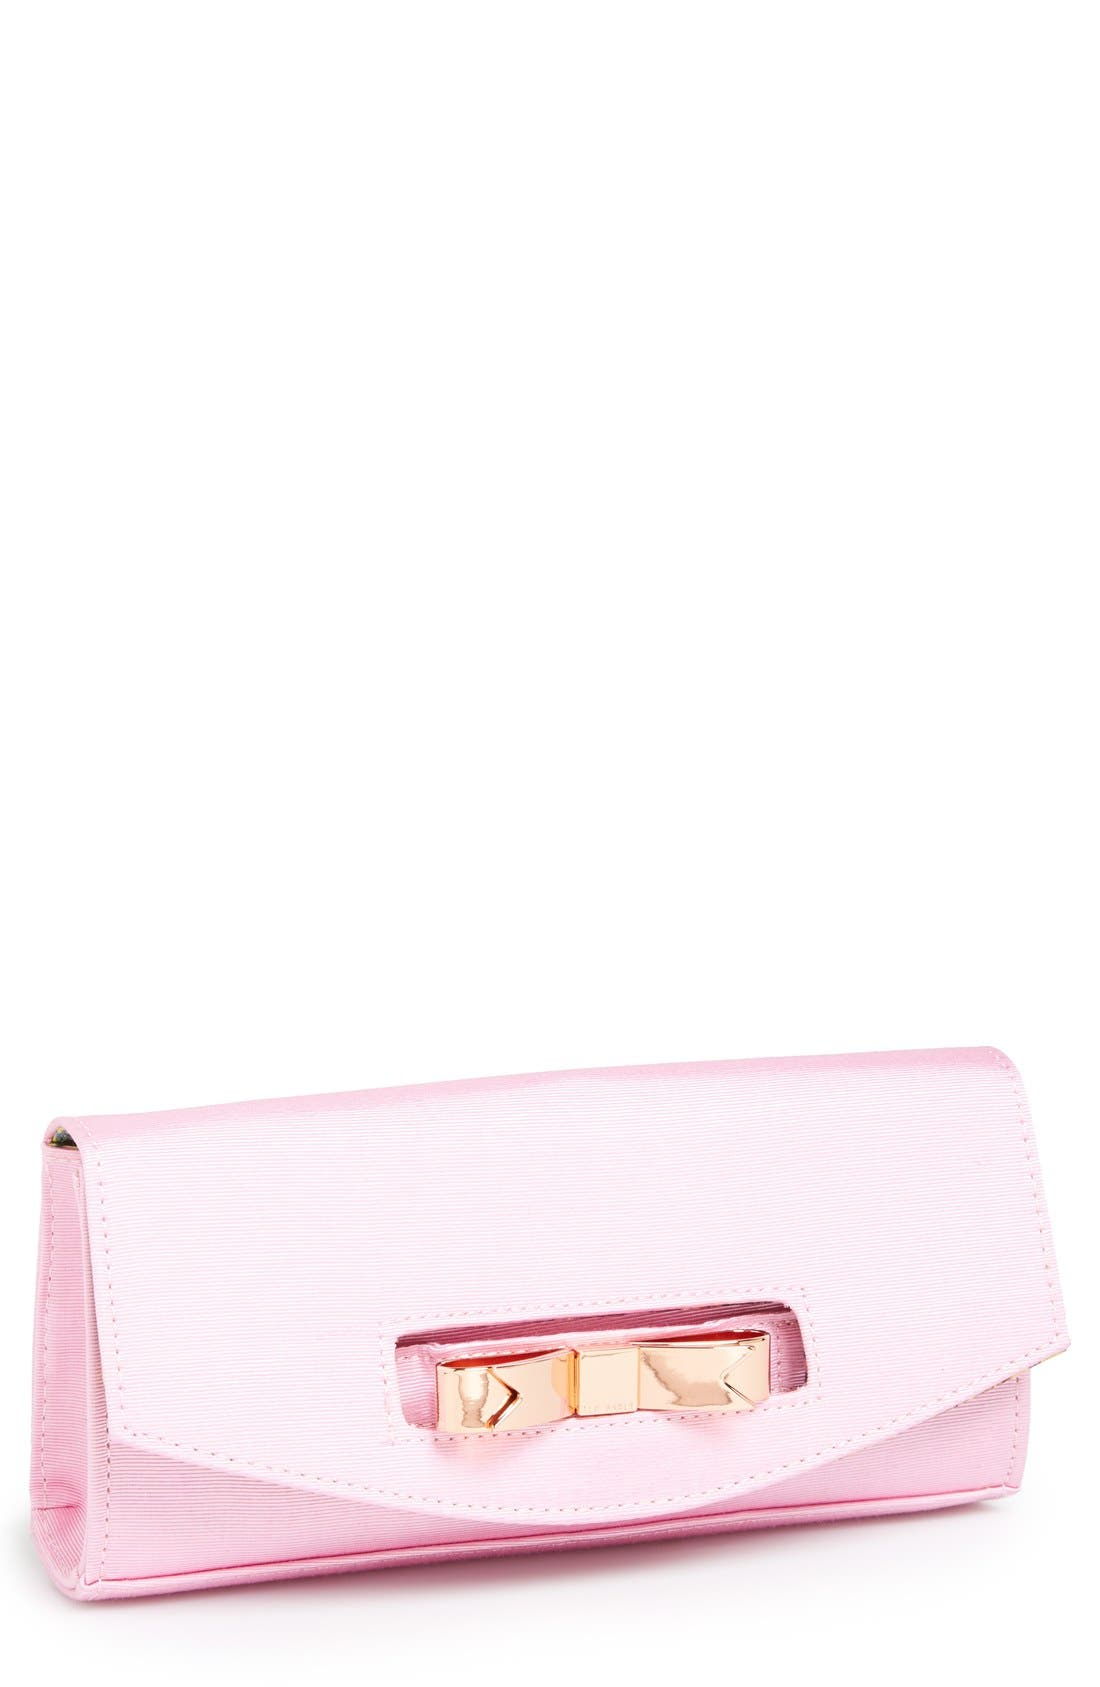 Alternate Image 1 Selected - Ted Baker London 'Bow' Flap Clutch